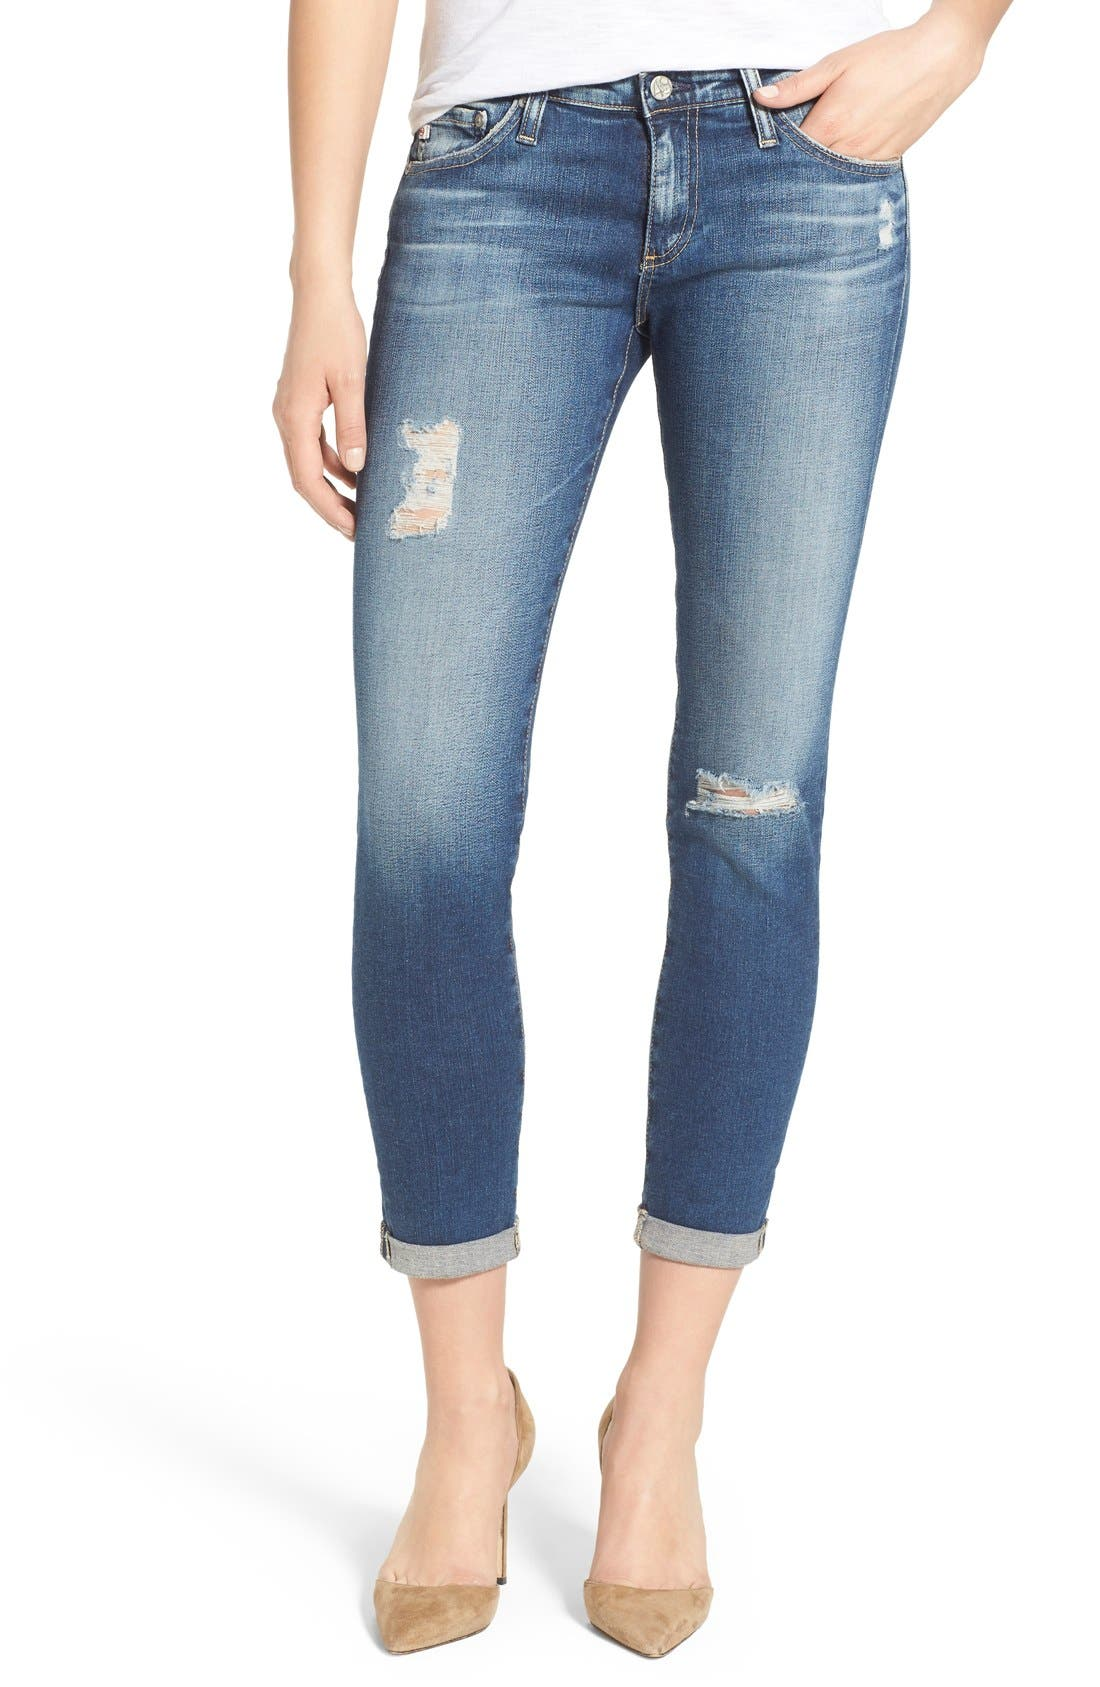 Alternate Image 1 Selected - AG 'The Stilt' Roll Cuff Skinny Jeans (4 Years Destroyed)